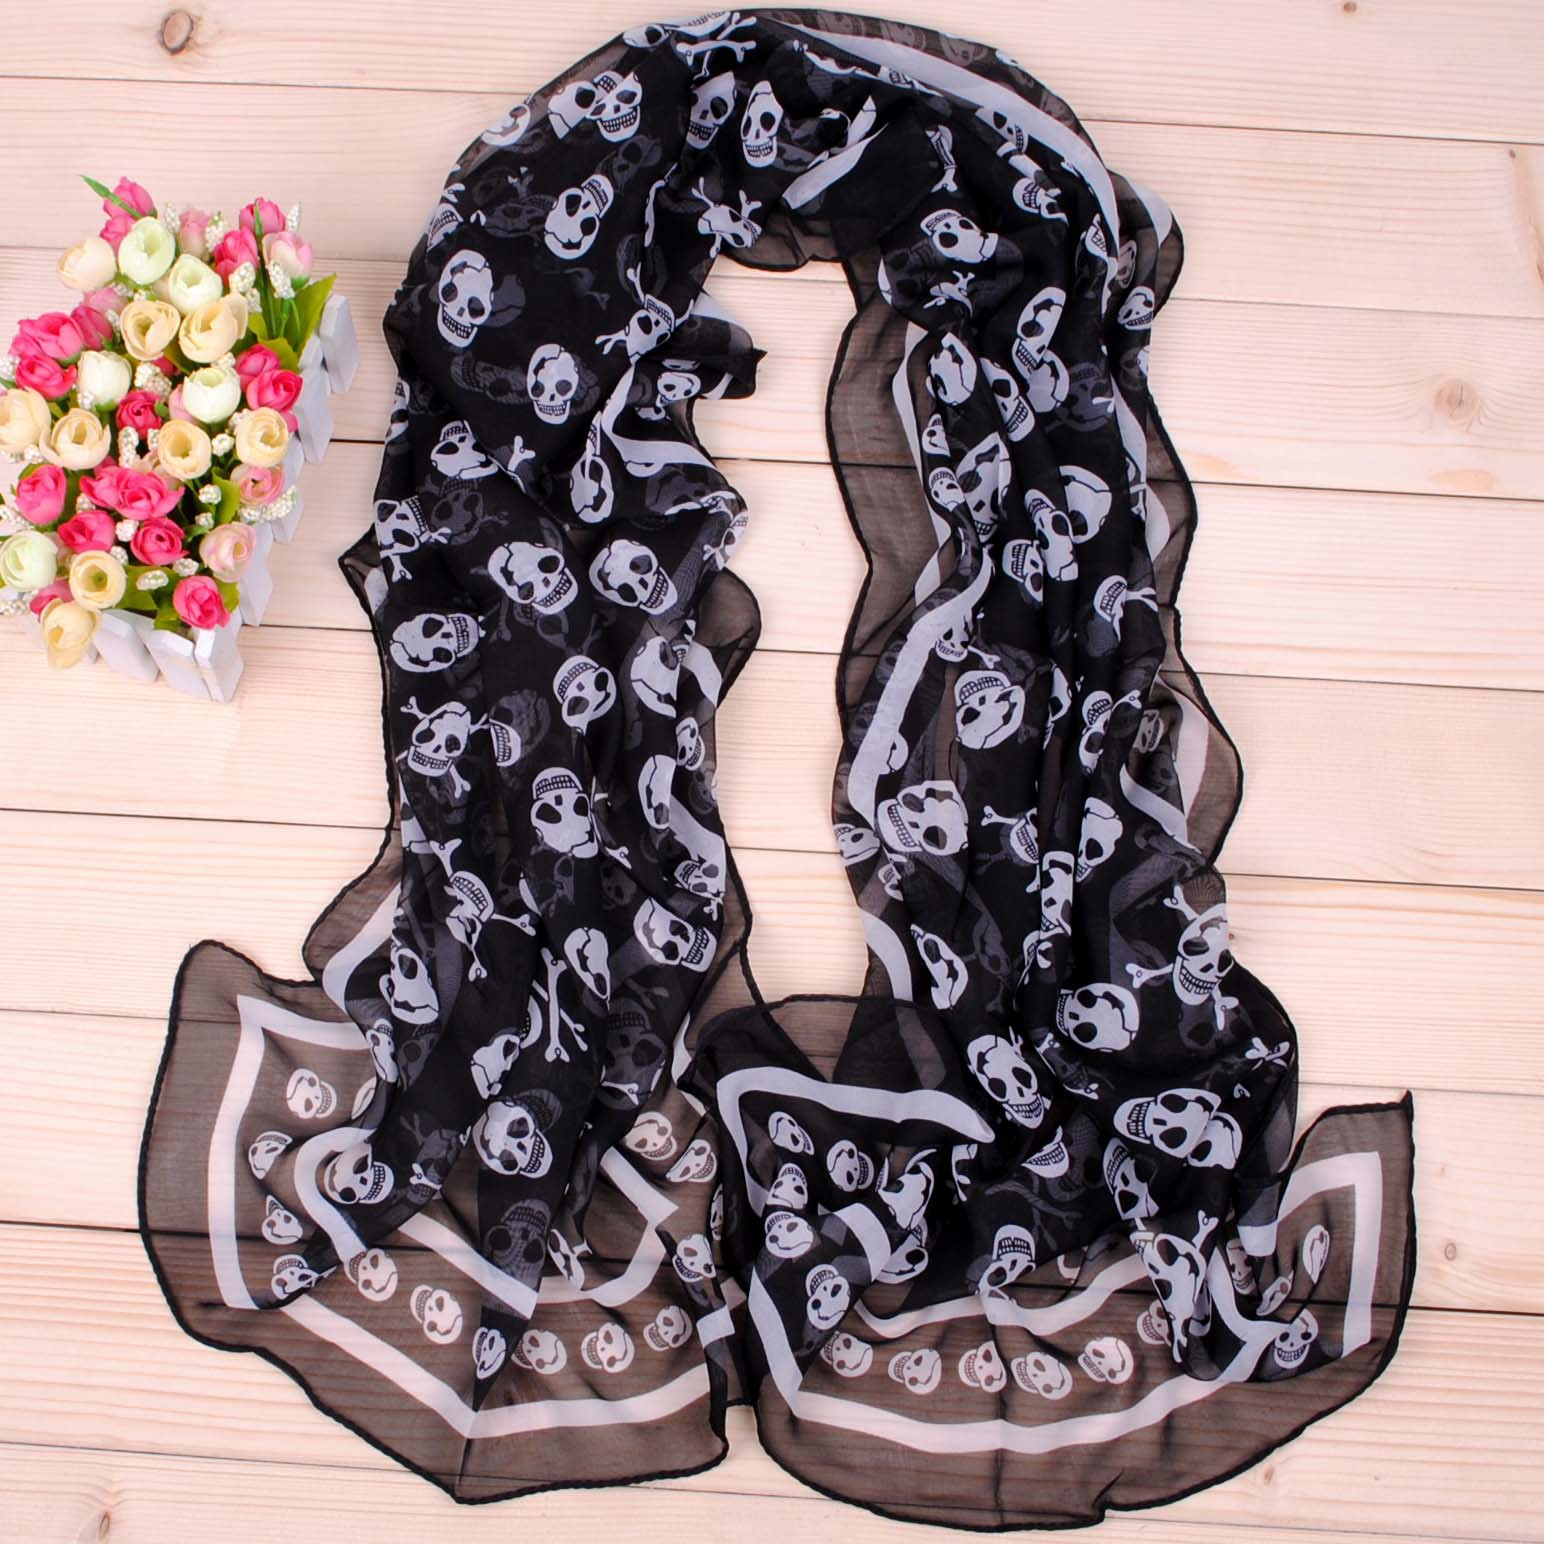 Luxury Brand Peacock Embroidered Scarf Women Summer Nylon Pirate Skull Long Chiffon Scarfr Lace Scarf Hijab Ladies Scarves